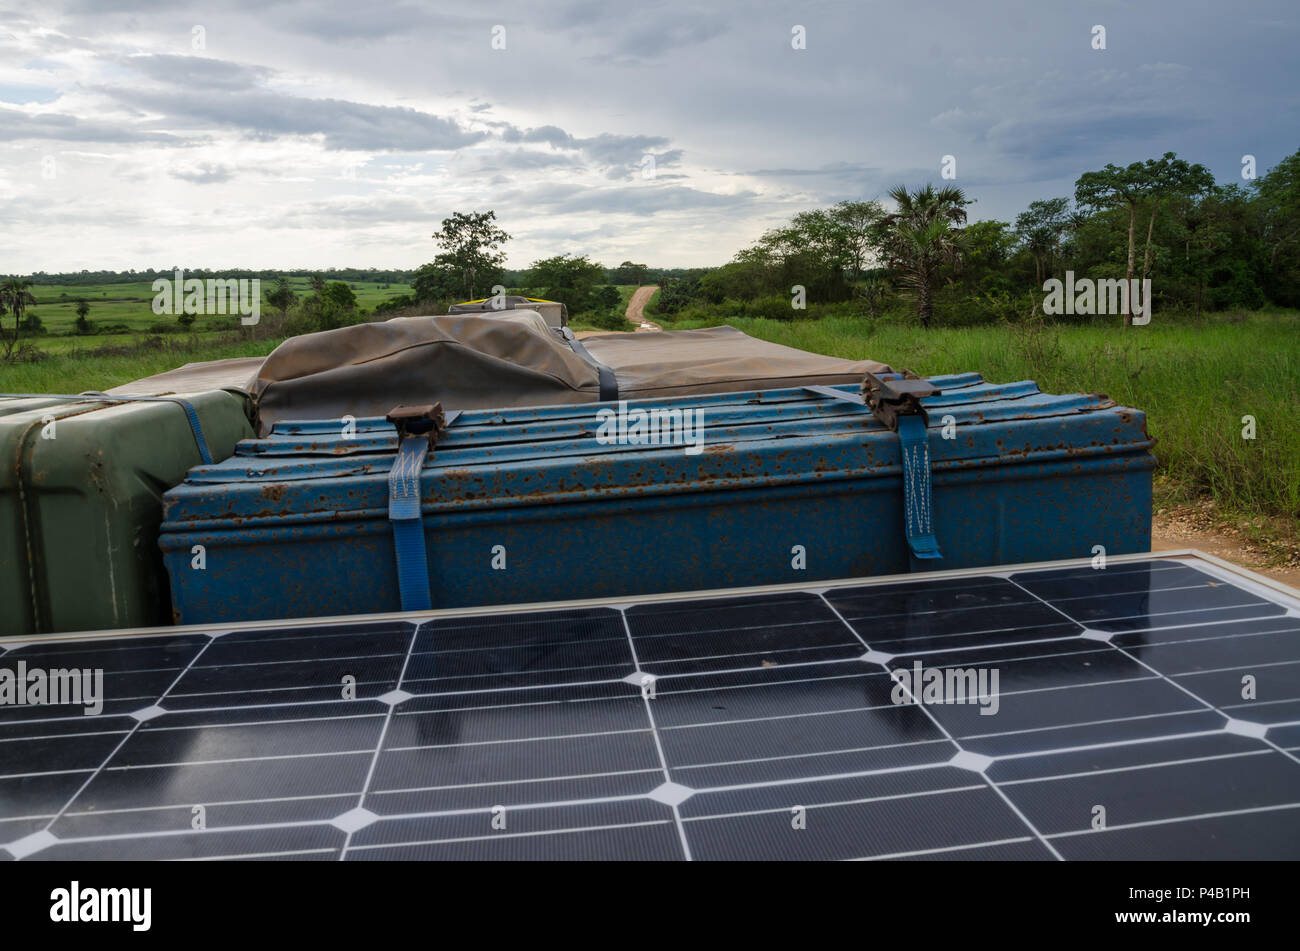 Roof of 4x4 offroad vehicle with jerry can, solar panel